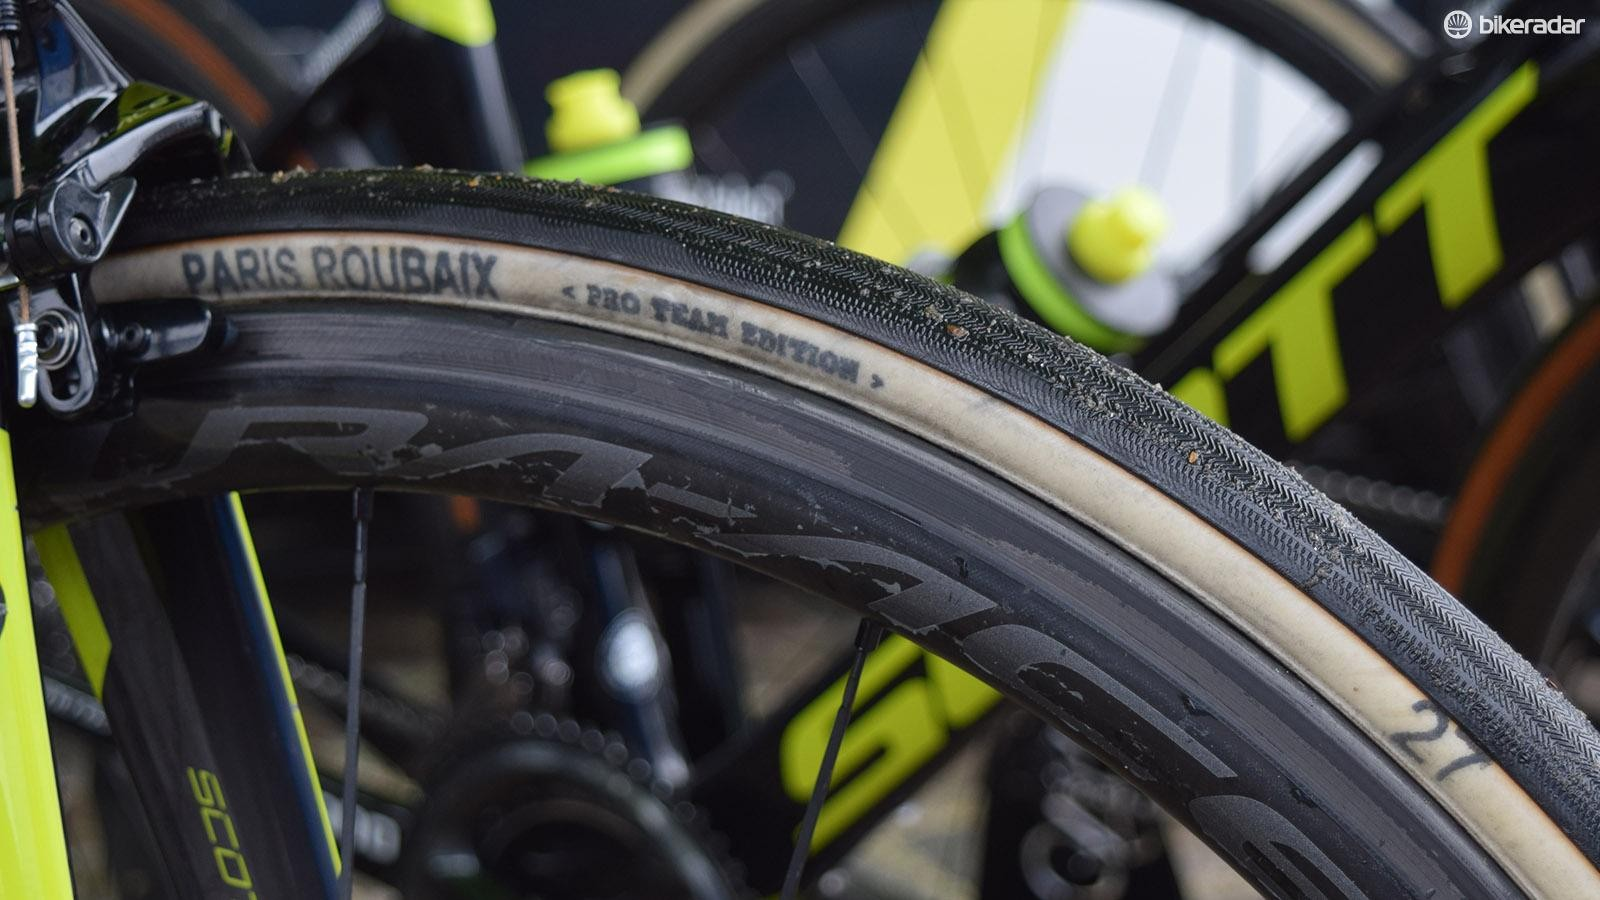 Mitchelton-Scott had a mix of FMB and different Continental tubular tyres